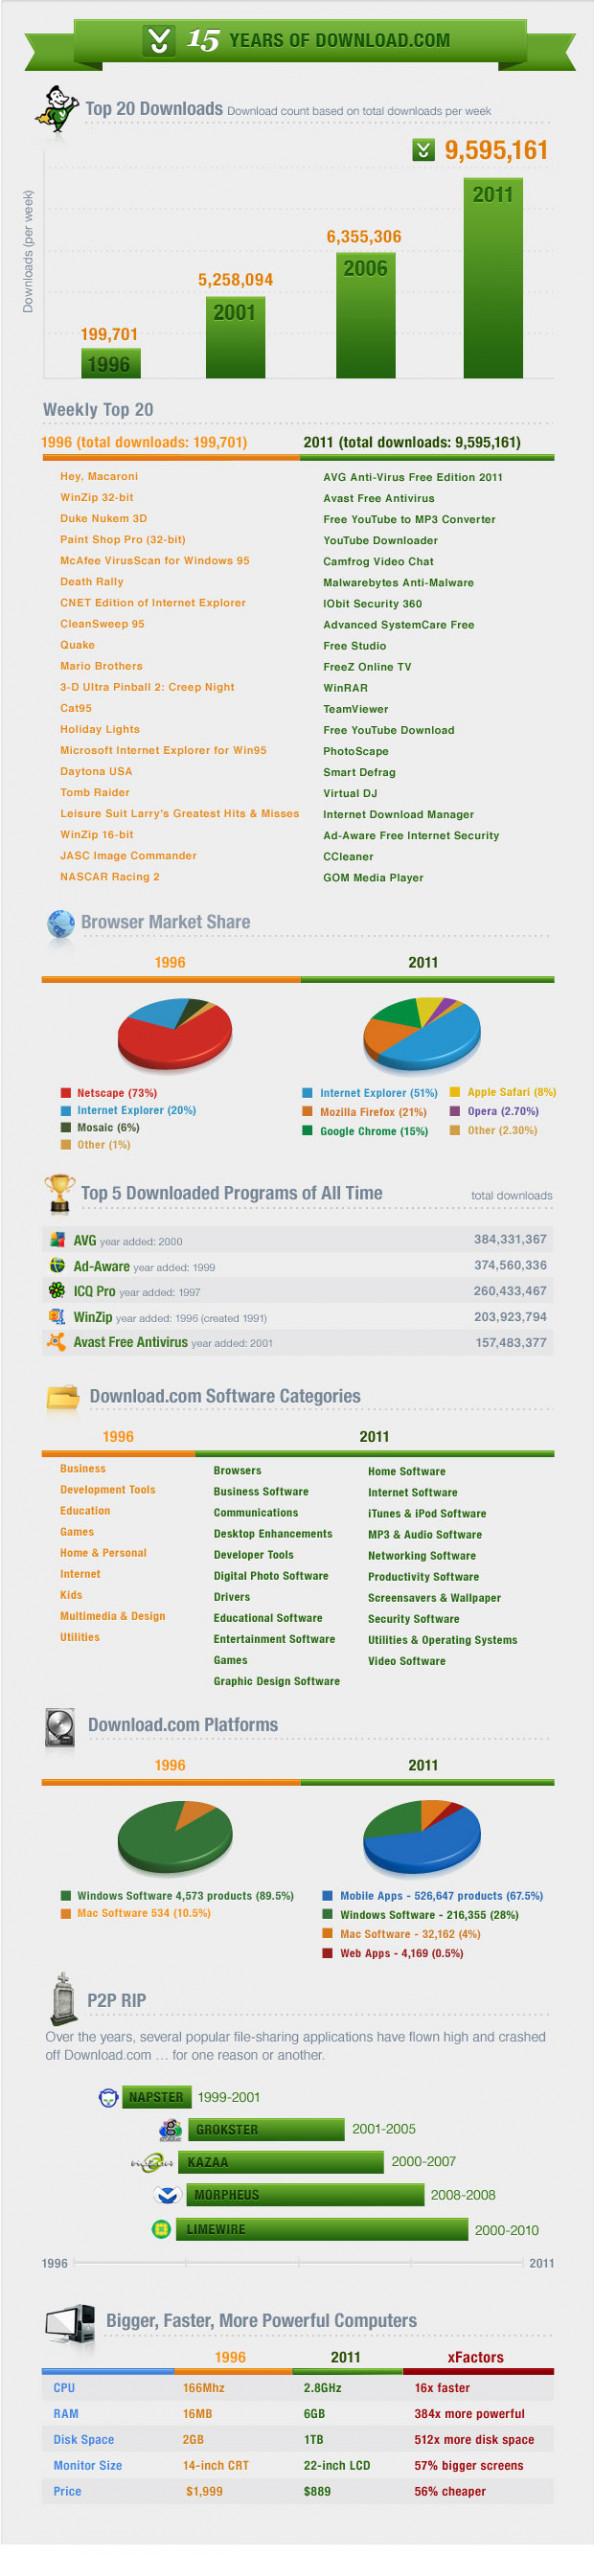 15 years of Download.com, The Original App Store Infographic